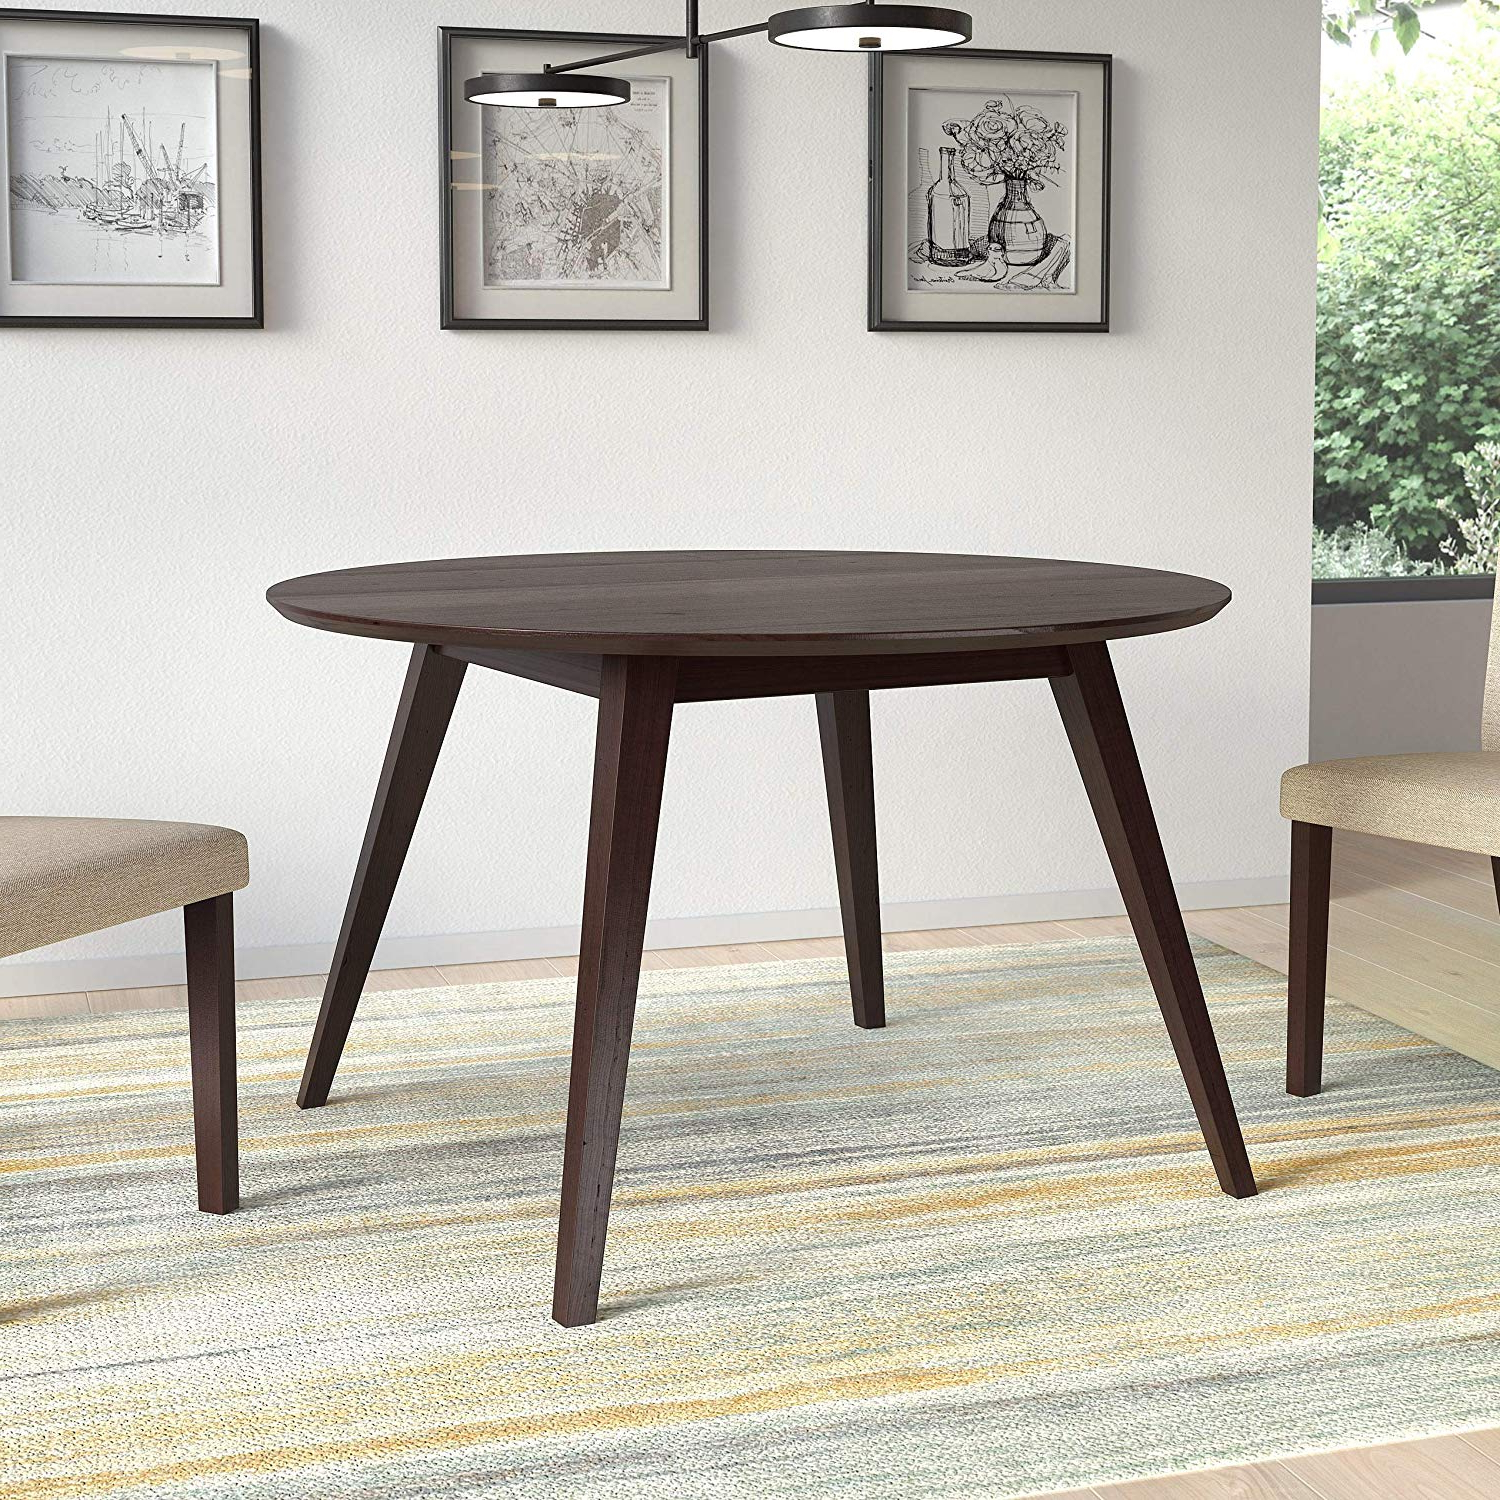 Atwood Transitional Square Dining Tables Pertaining To Favorite Amazon – Corliving Atwood Round Dining Table In (View 6 of 30)